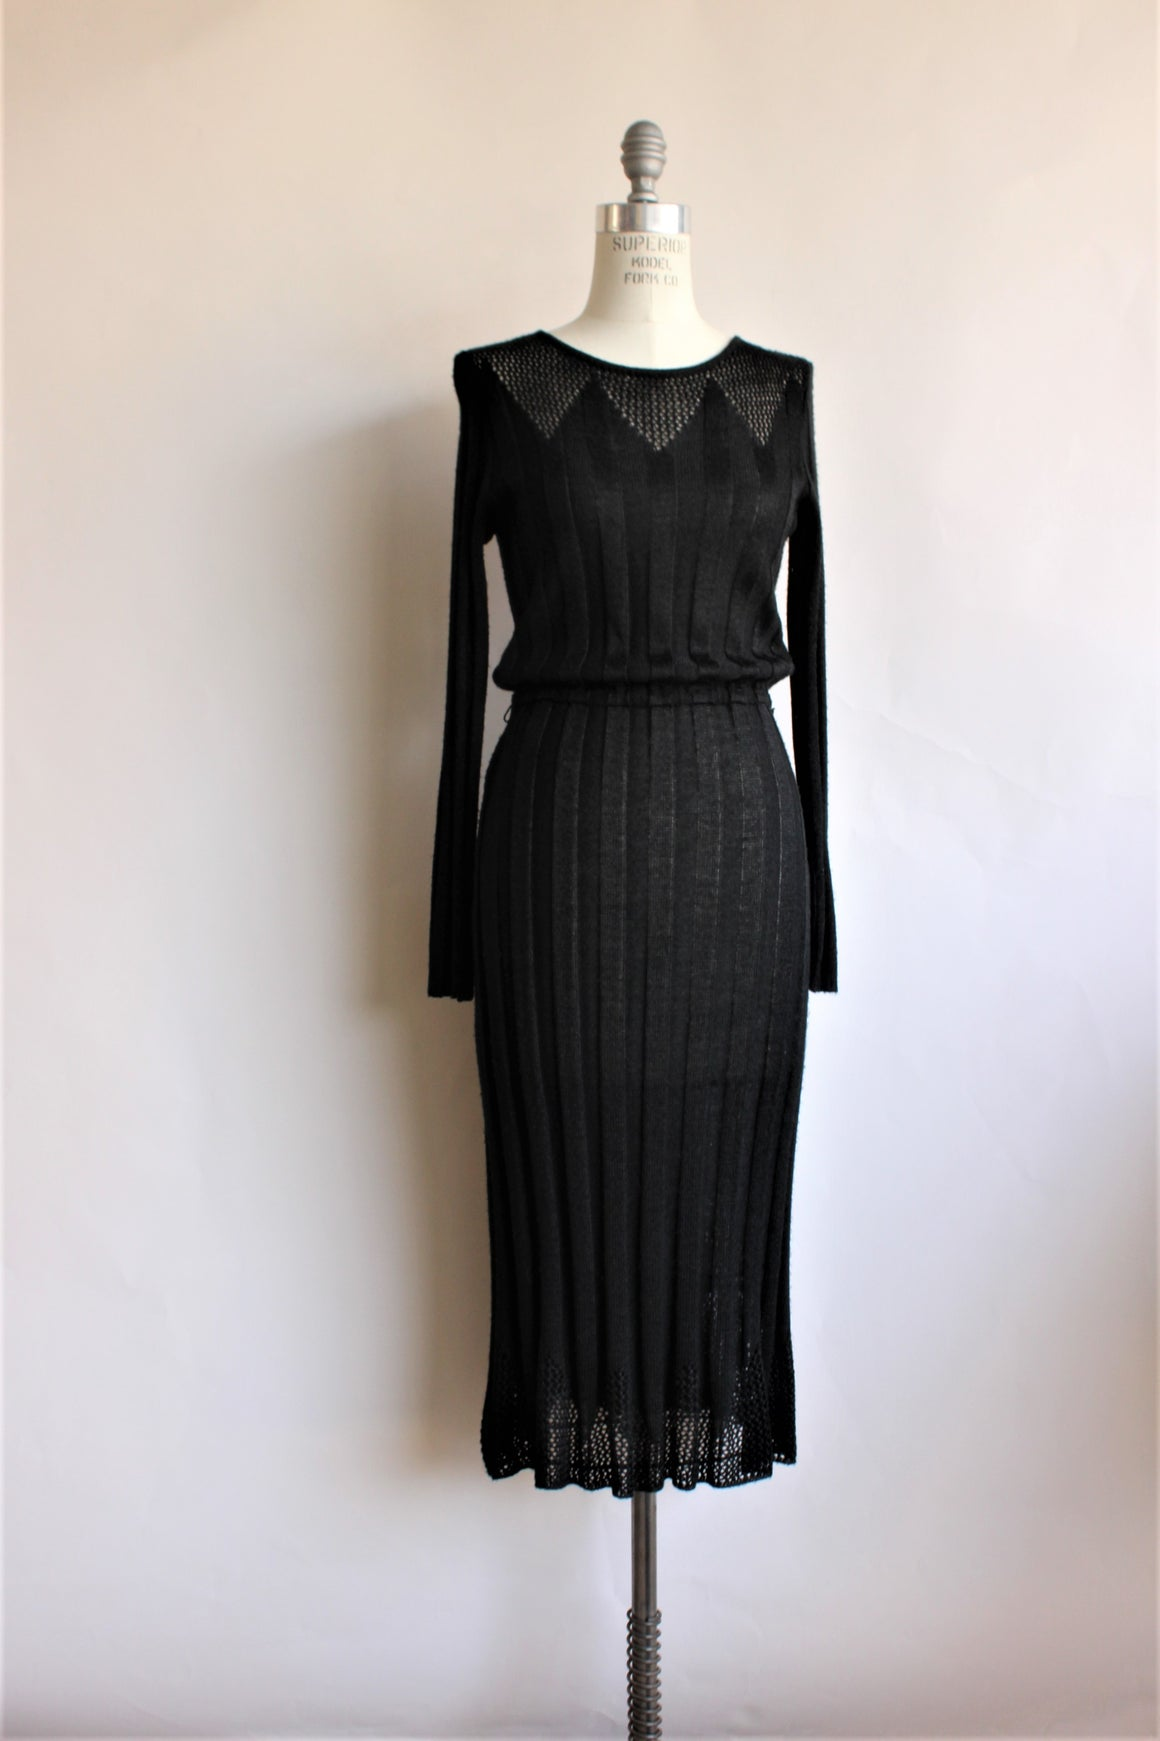 Vintage 1970s Black Knit Dress